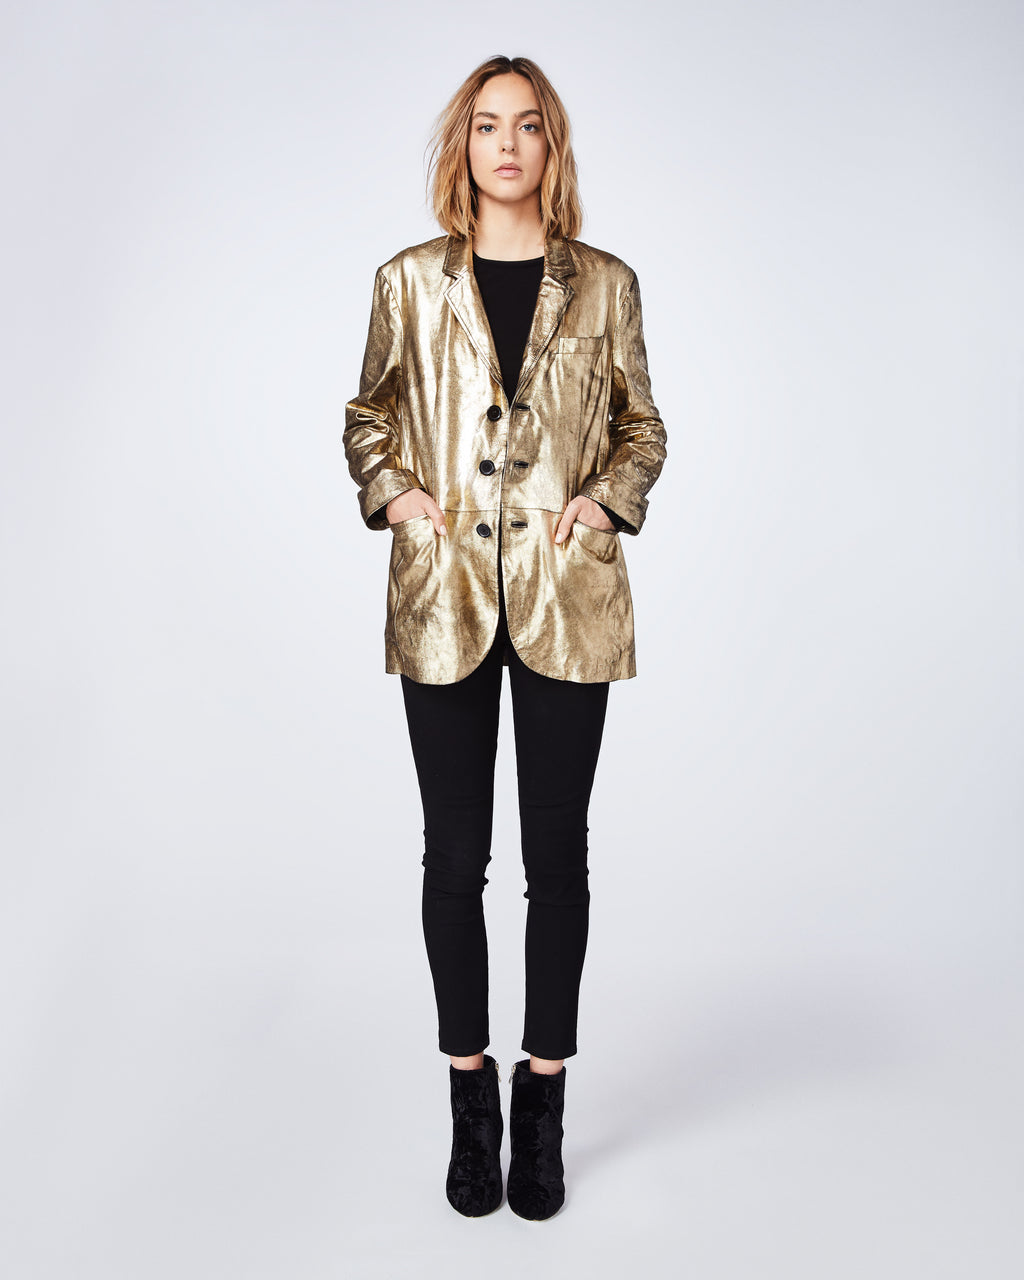 CM10045 - DISTRESSED LEATHER BOYFRIEND JACKET - outerwear - leather - Made with 100% lamb leather, this flashy gold jacket is meant to be worn oversized.